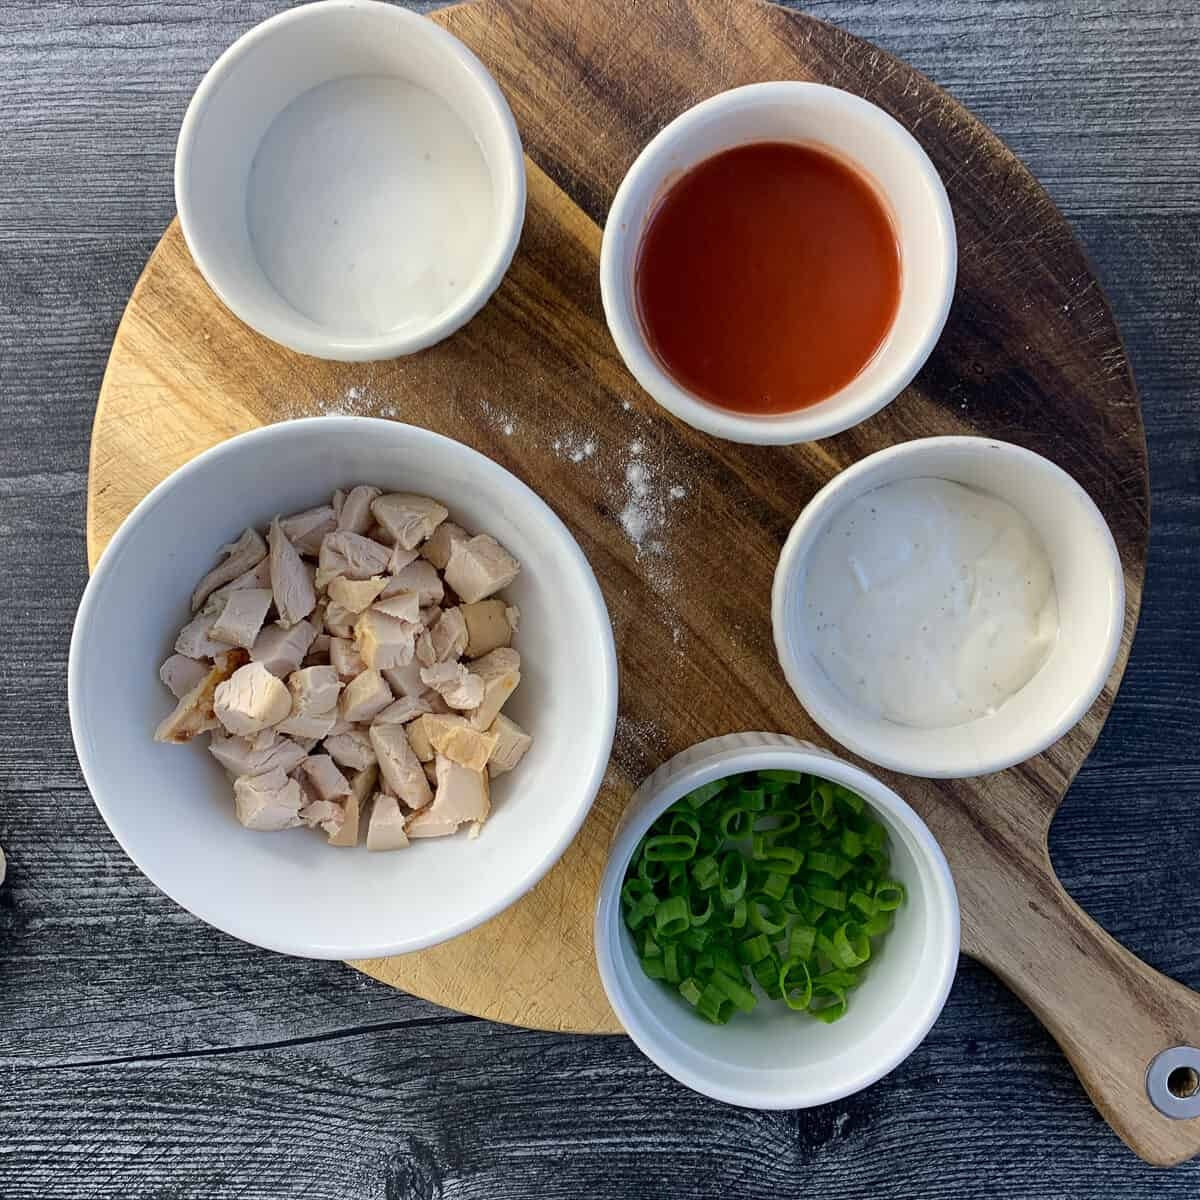 Wooden cutting board with small bowls of cubed chicken, ranch dressing, hot sauce, blue cheese dressing and green onions